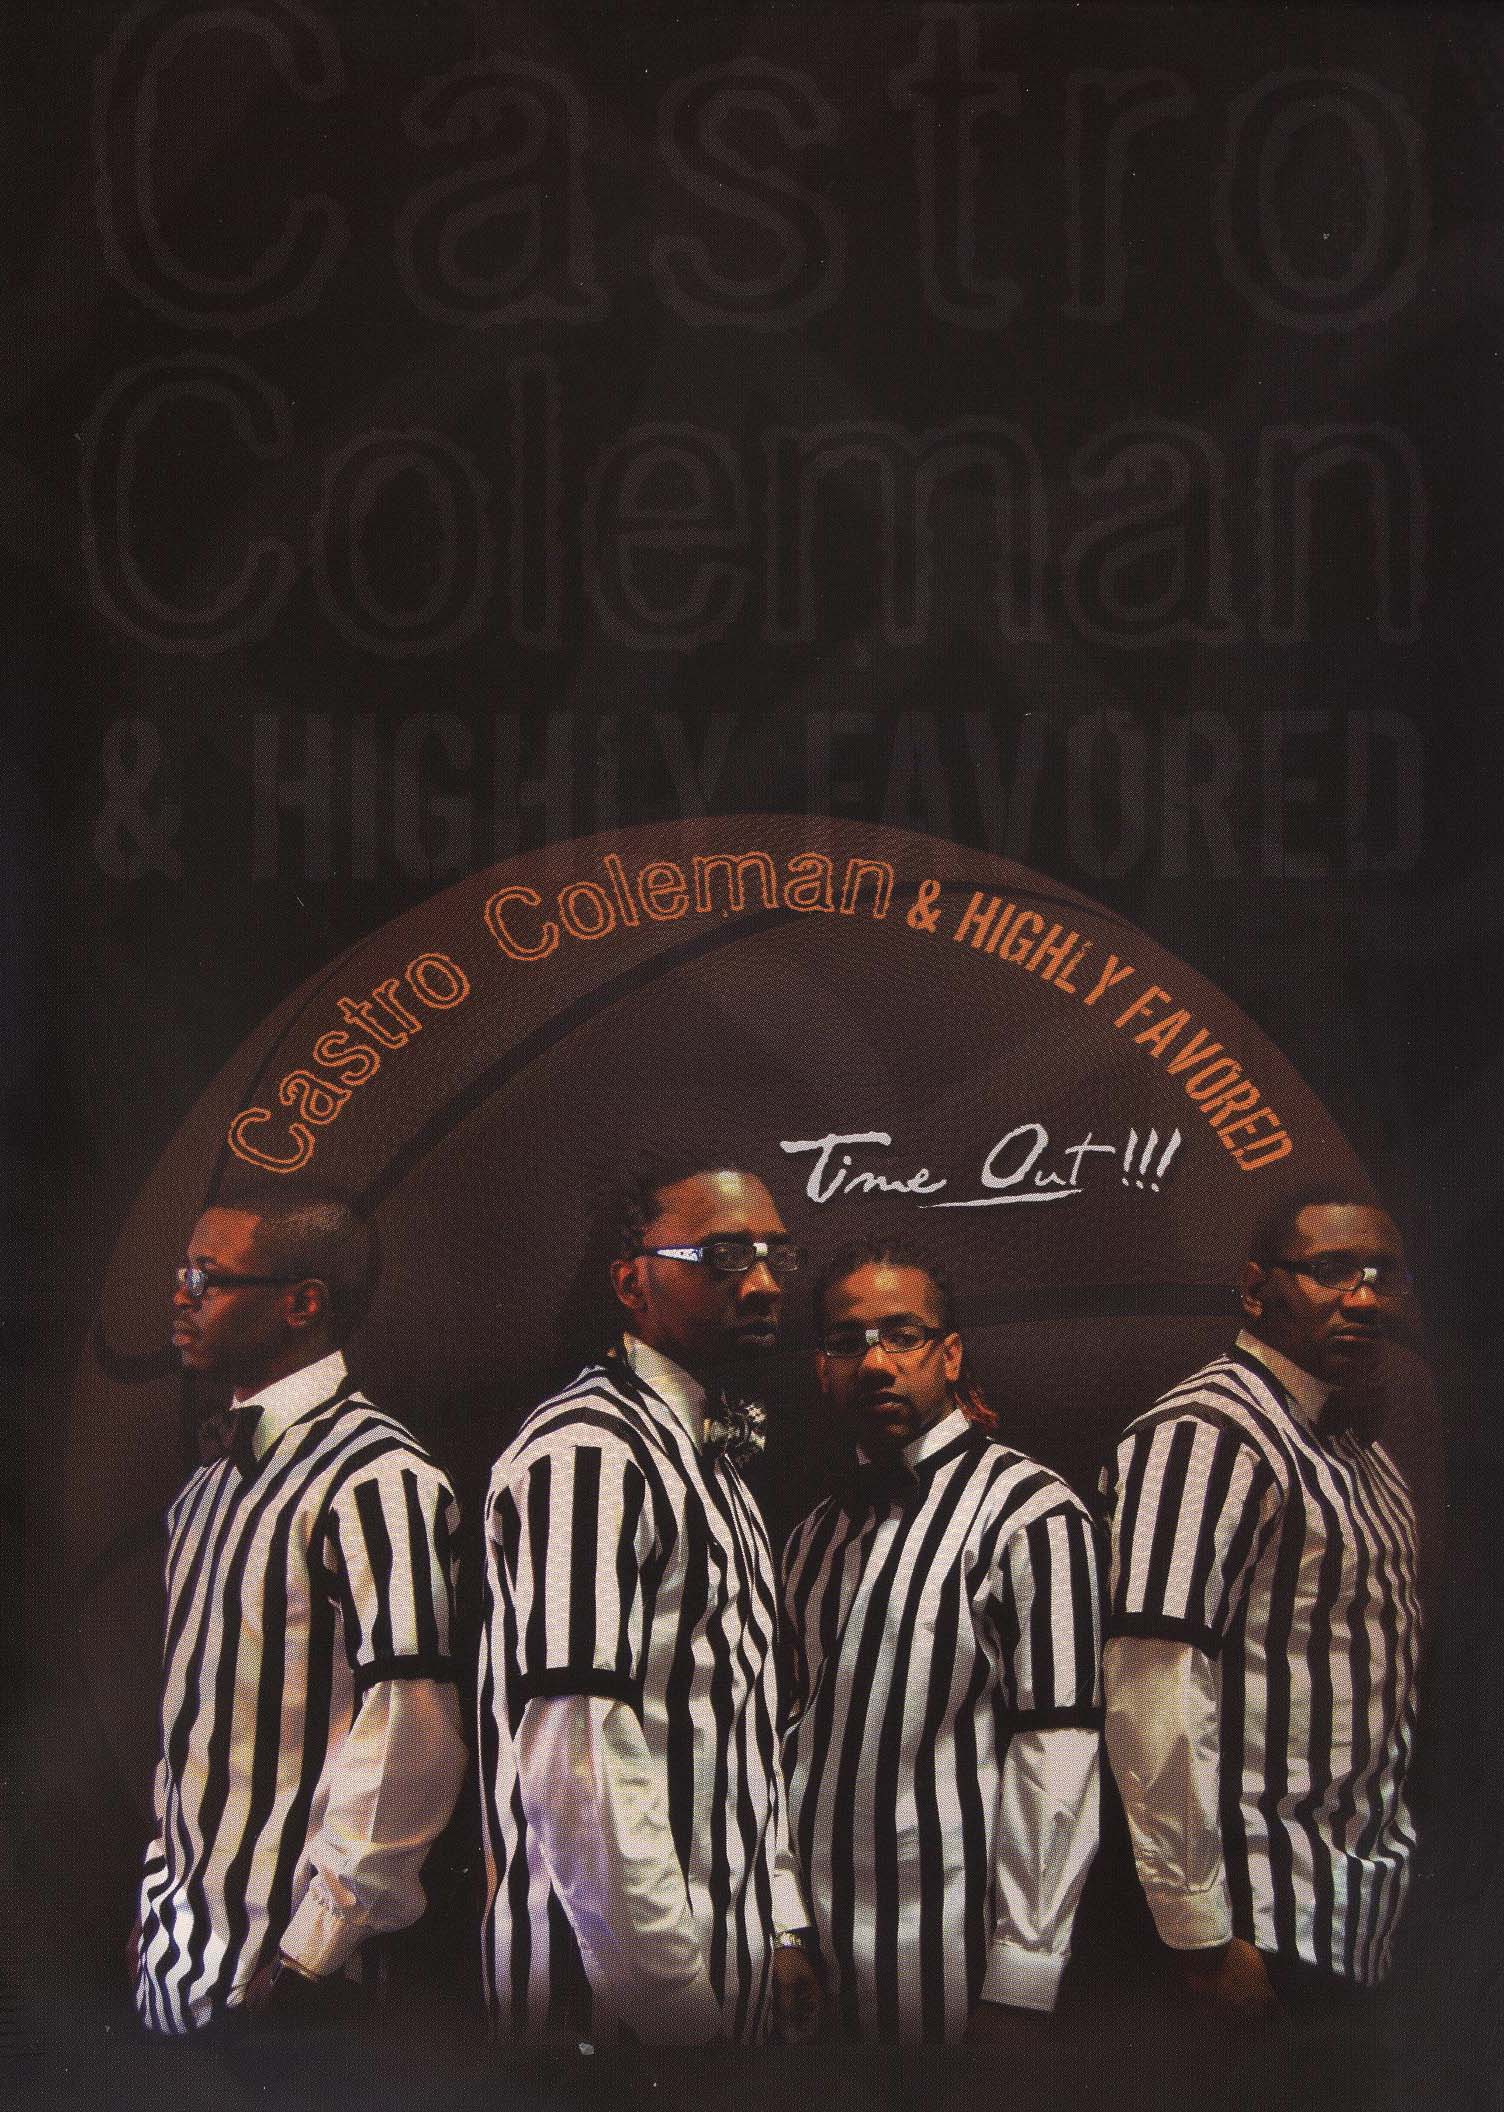 Castro Coleman & Highly Favored: Time Out!!!